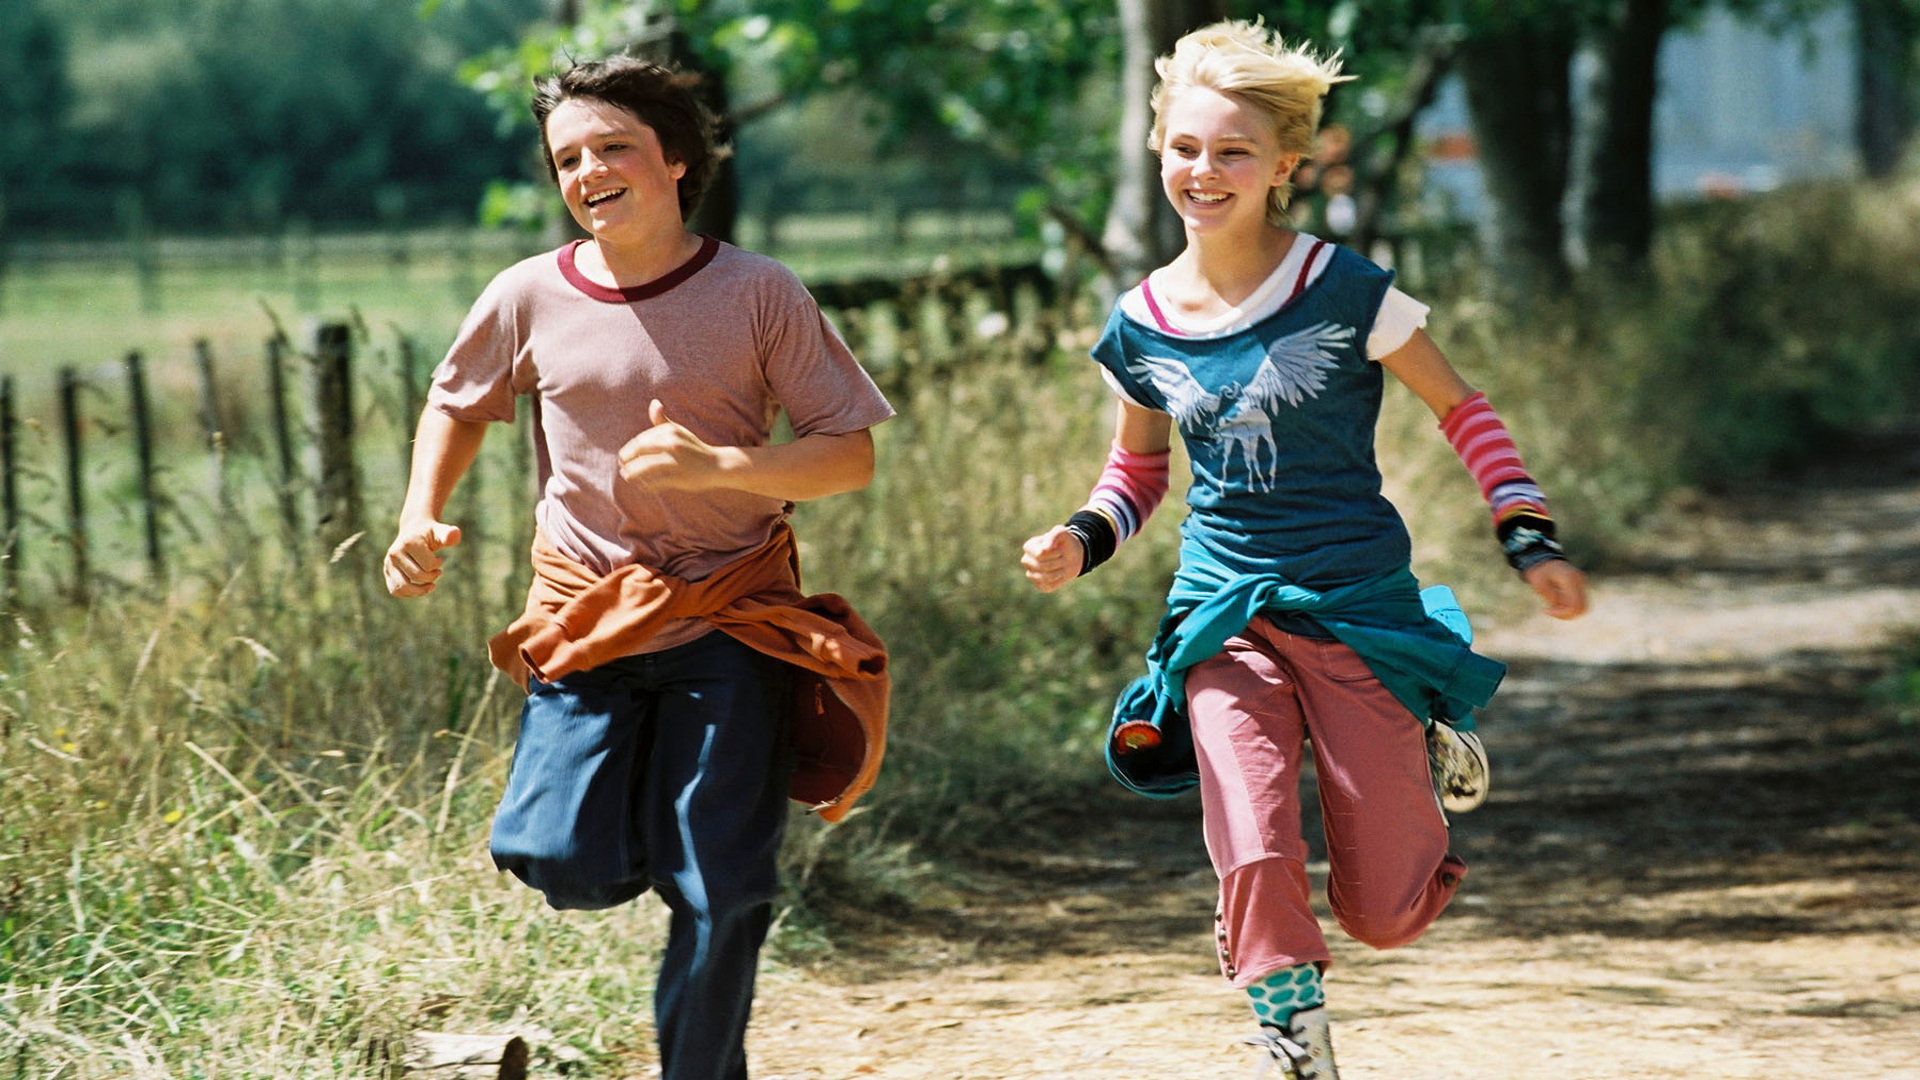 A still from the movie Bridge to Terabithia